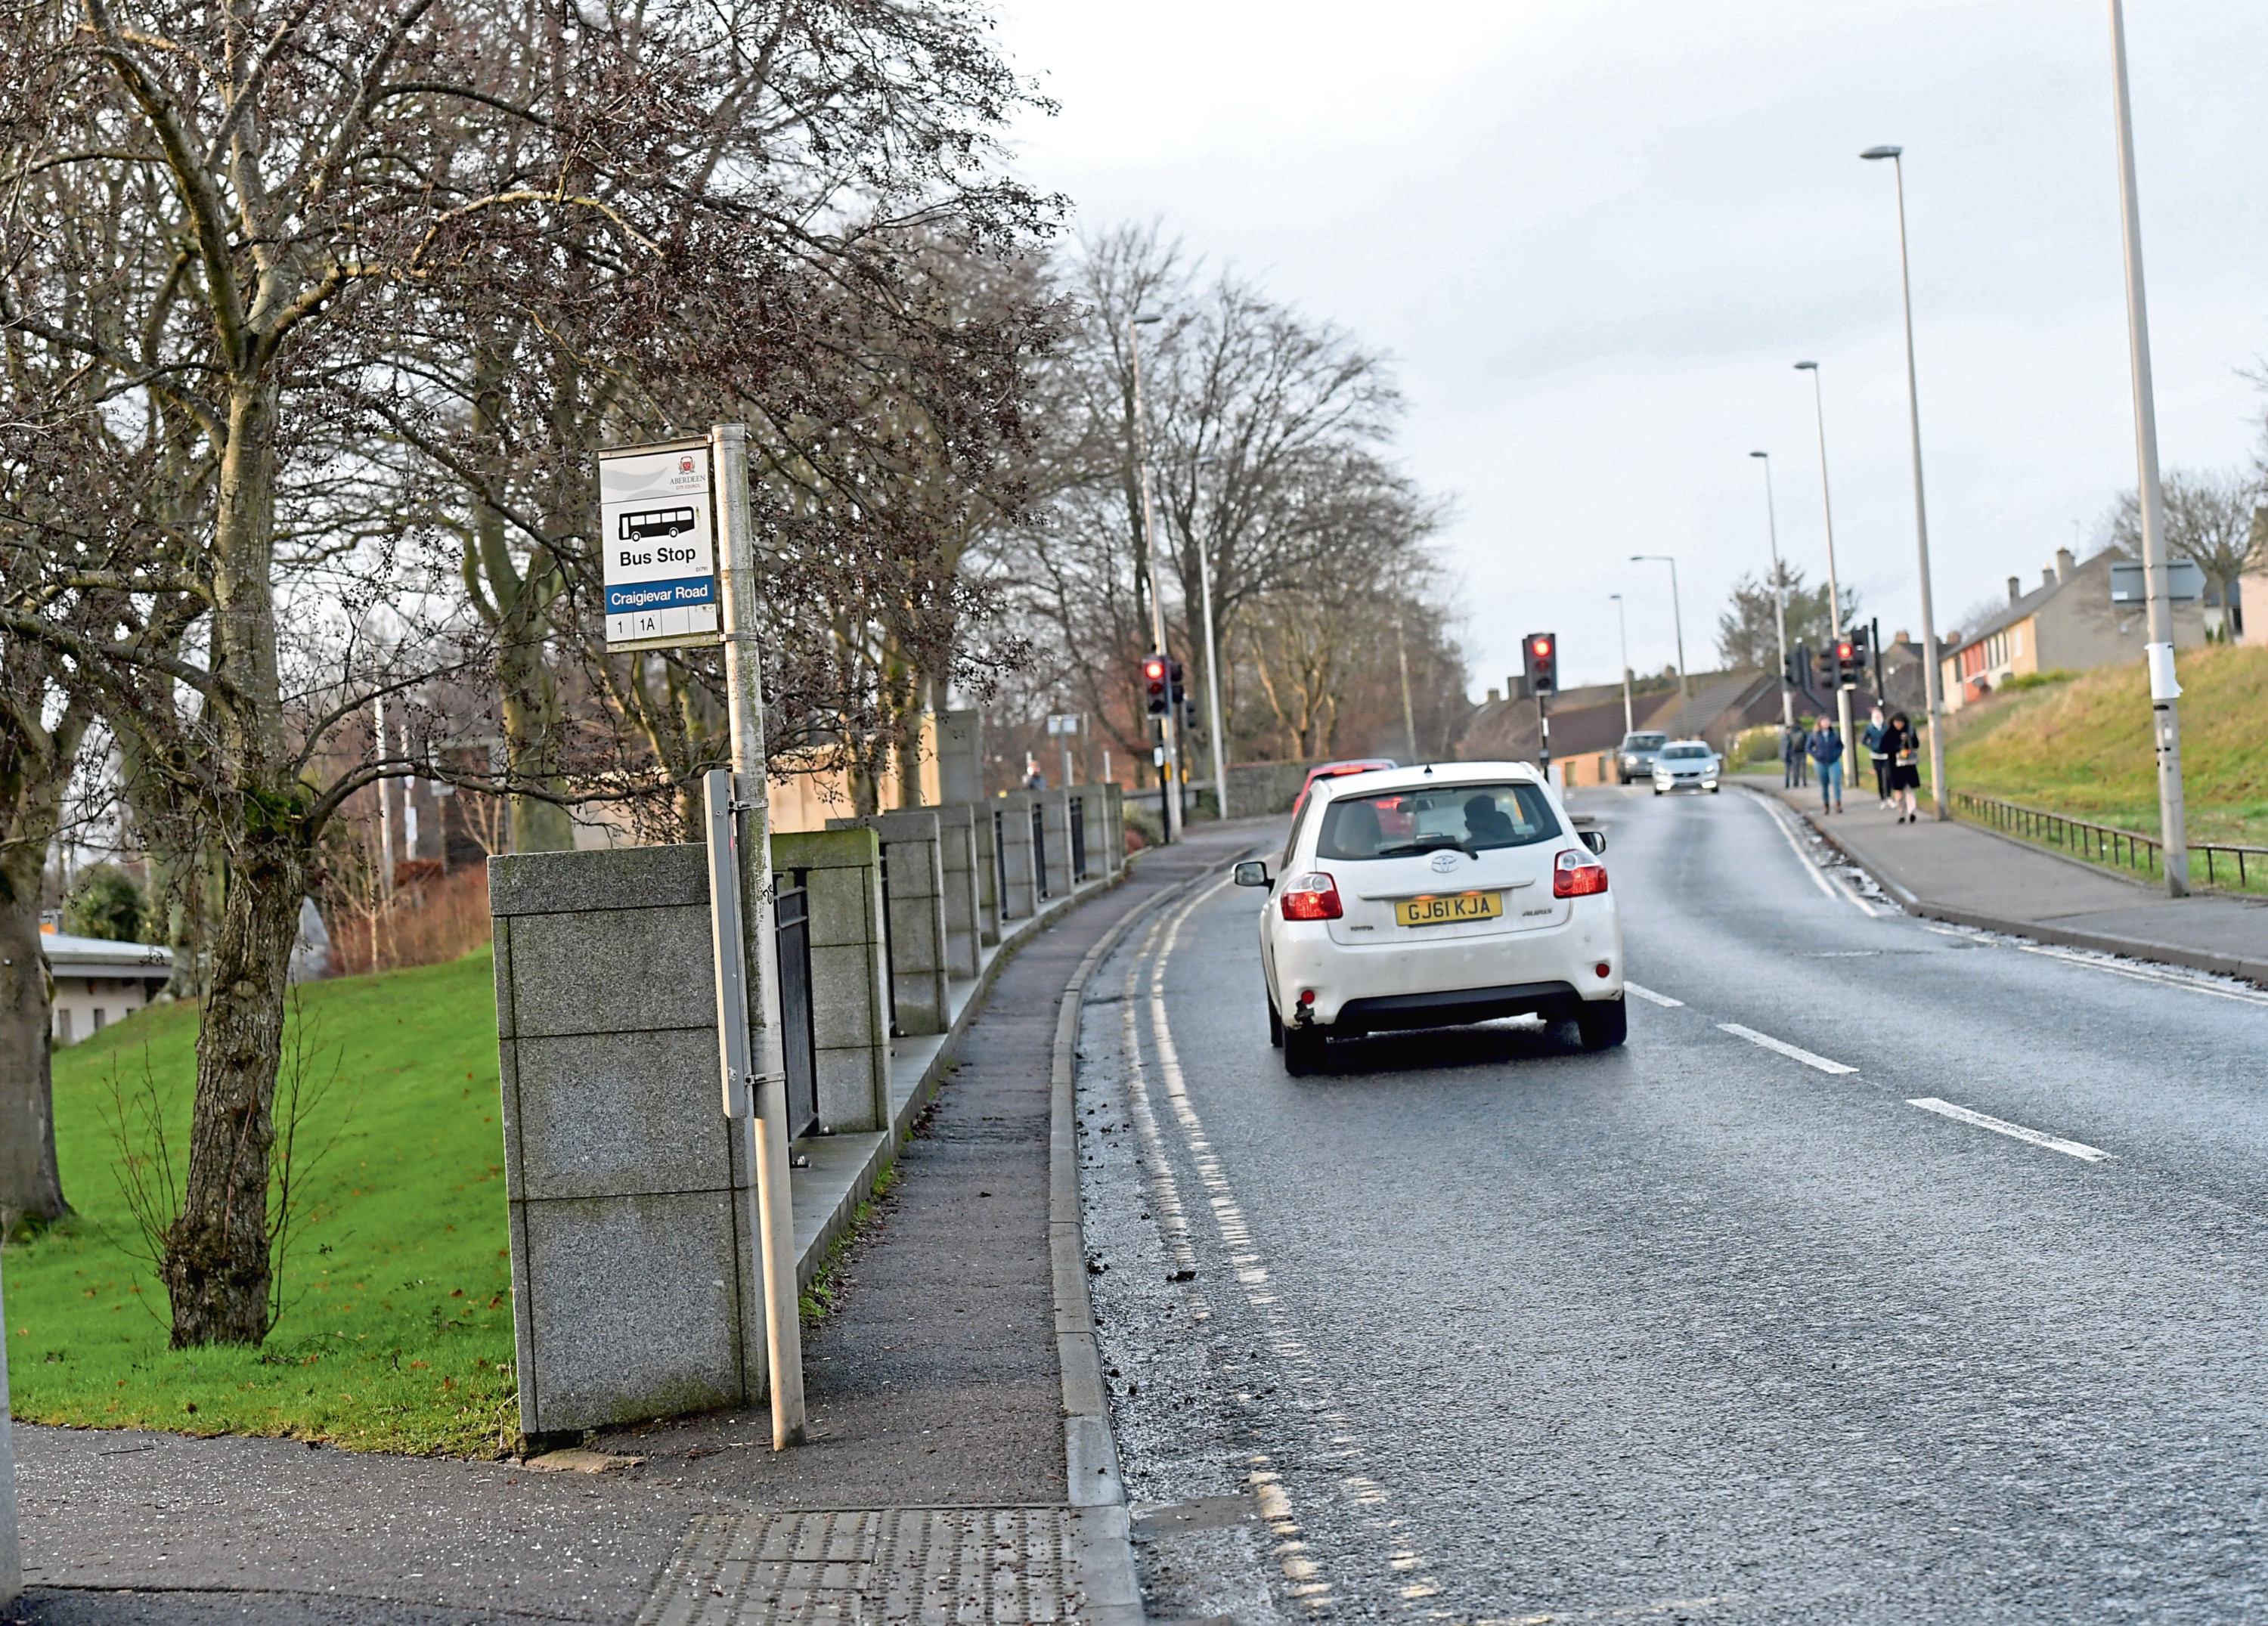 The Garthdee Road bus stop was removed five years ago and replaced with one inside the RGU campus